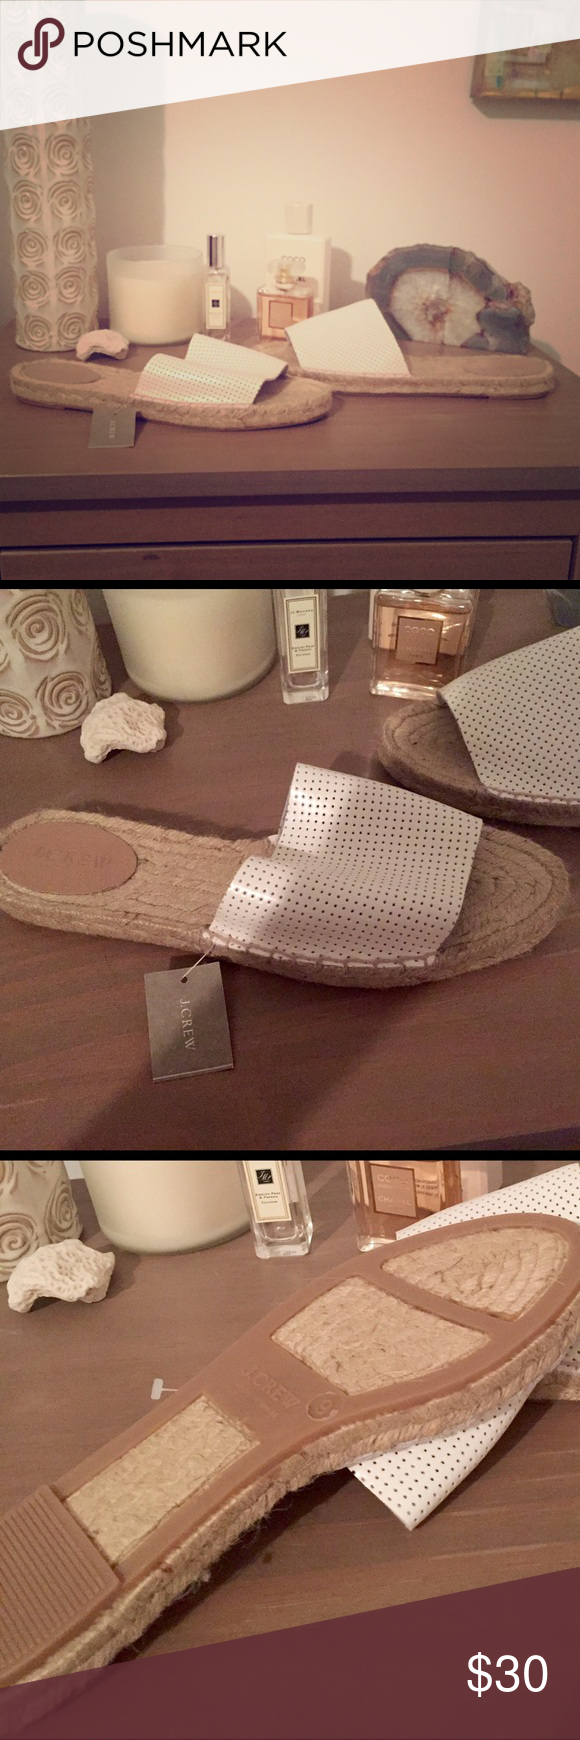 J Crew Flats. Never worn! NWT. J Crew white leather slip on flats. Never worn! Size 9. J. Crew Shoes Flats & Loafers